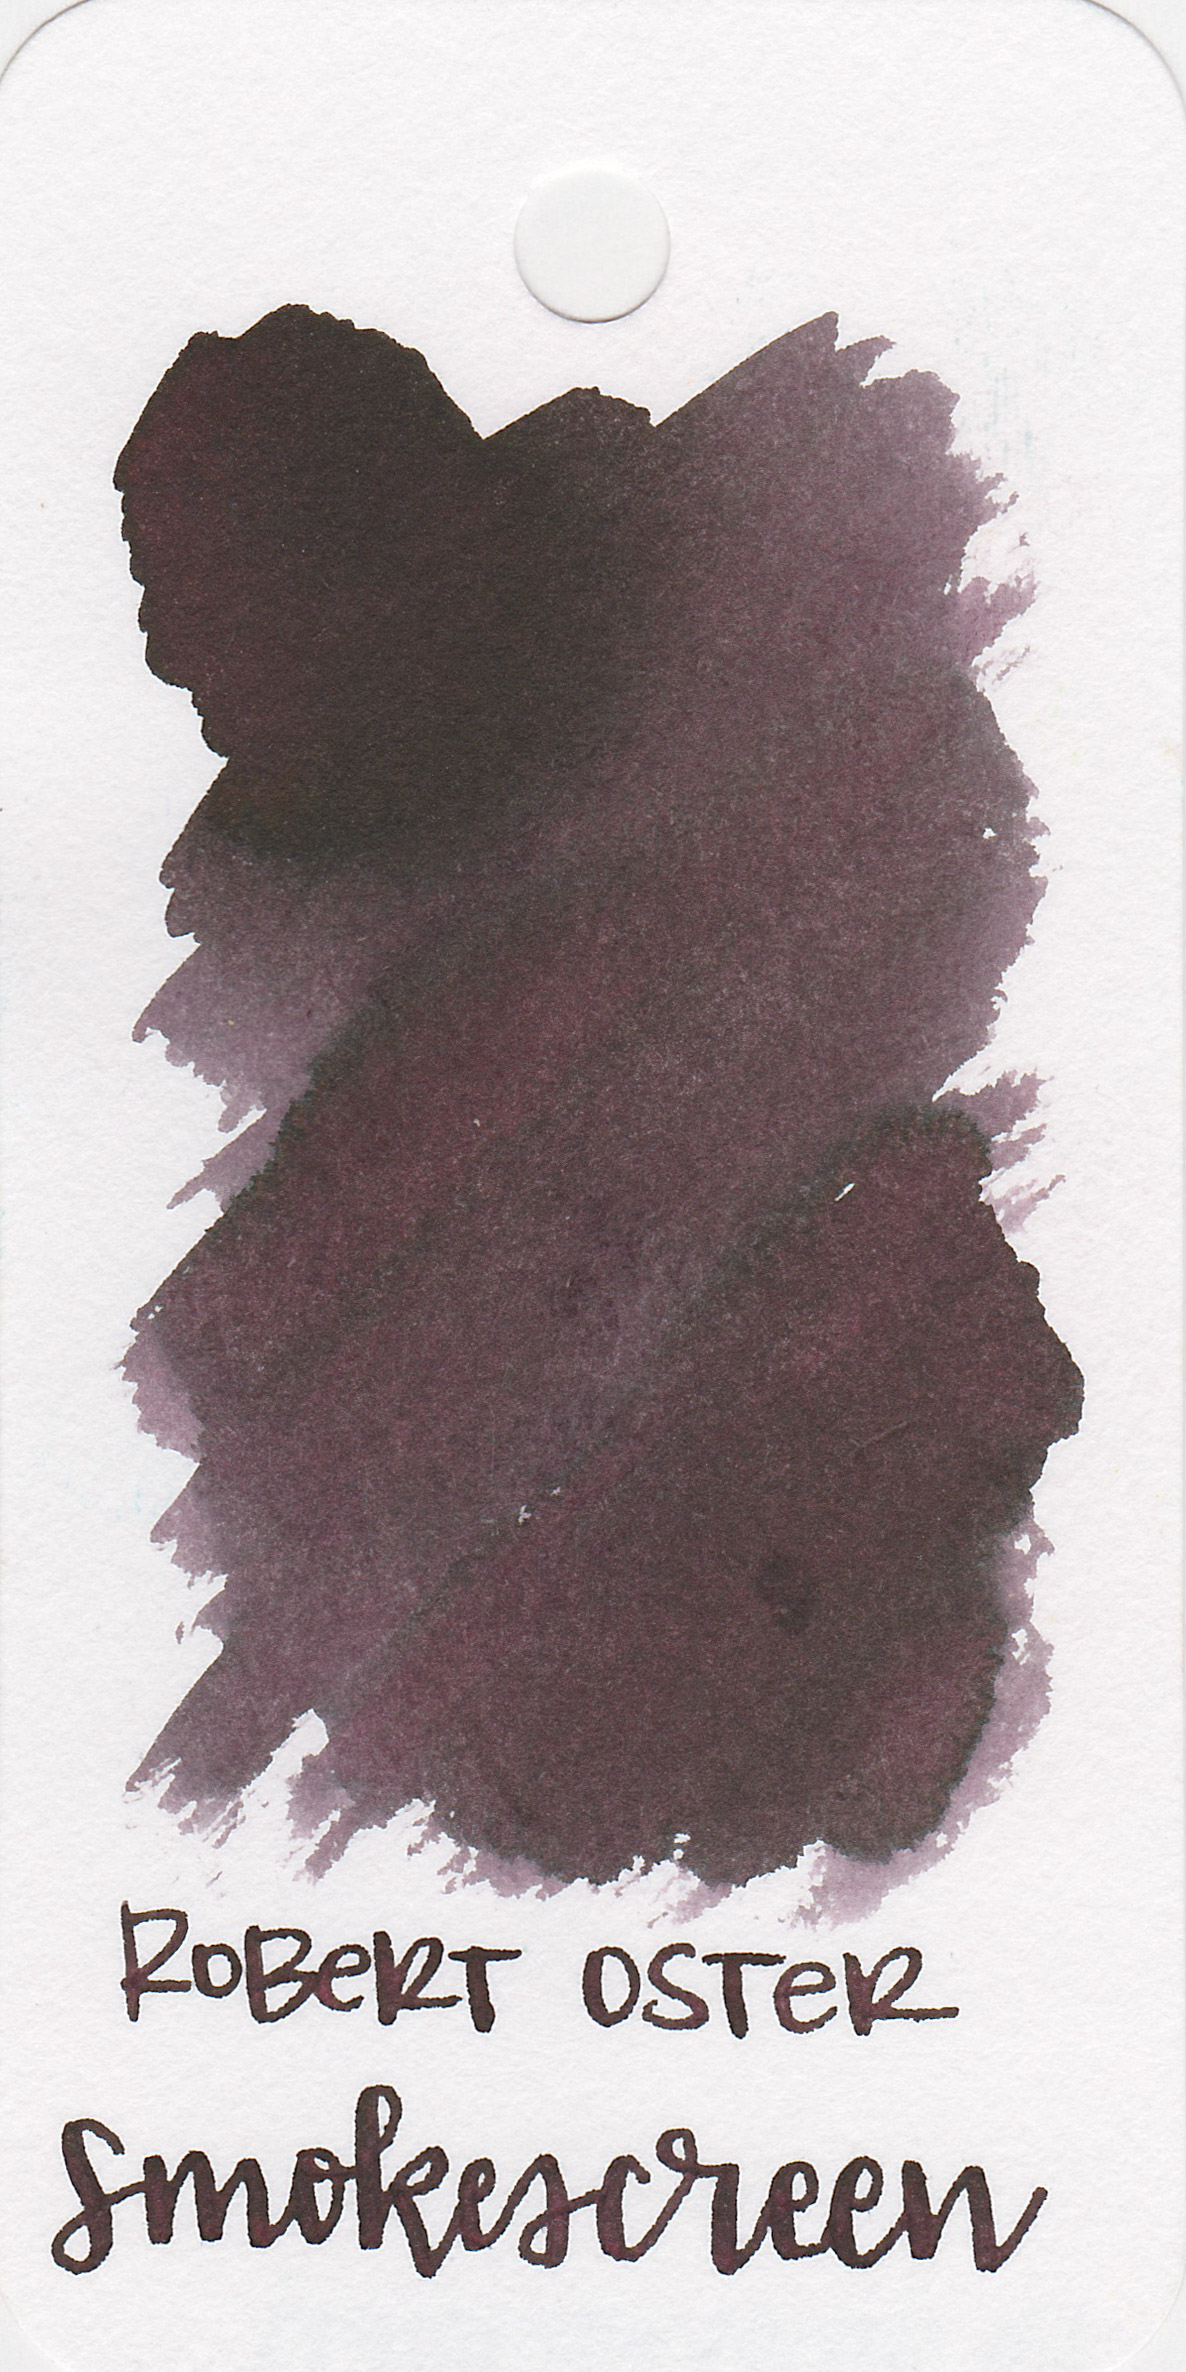 The color: - Smokescreen is a dark purpleish brown.